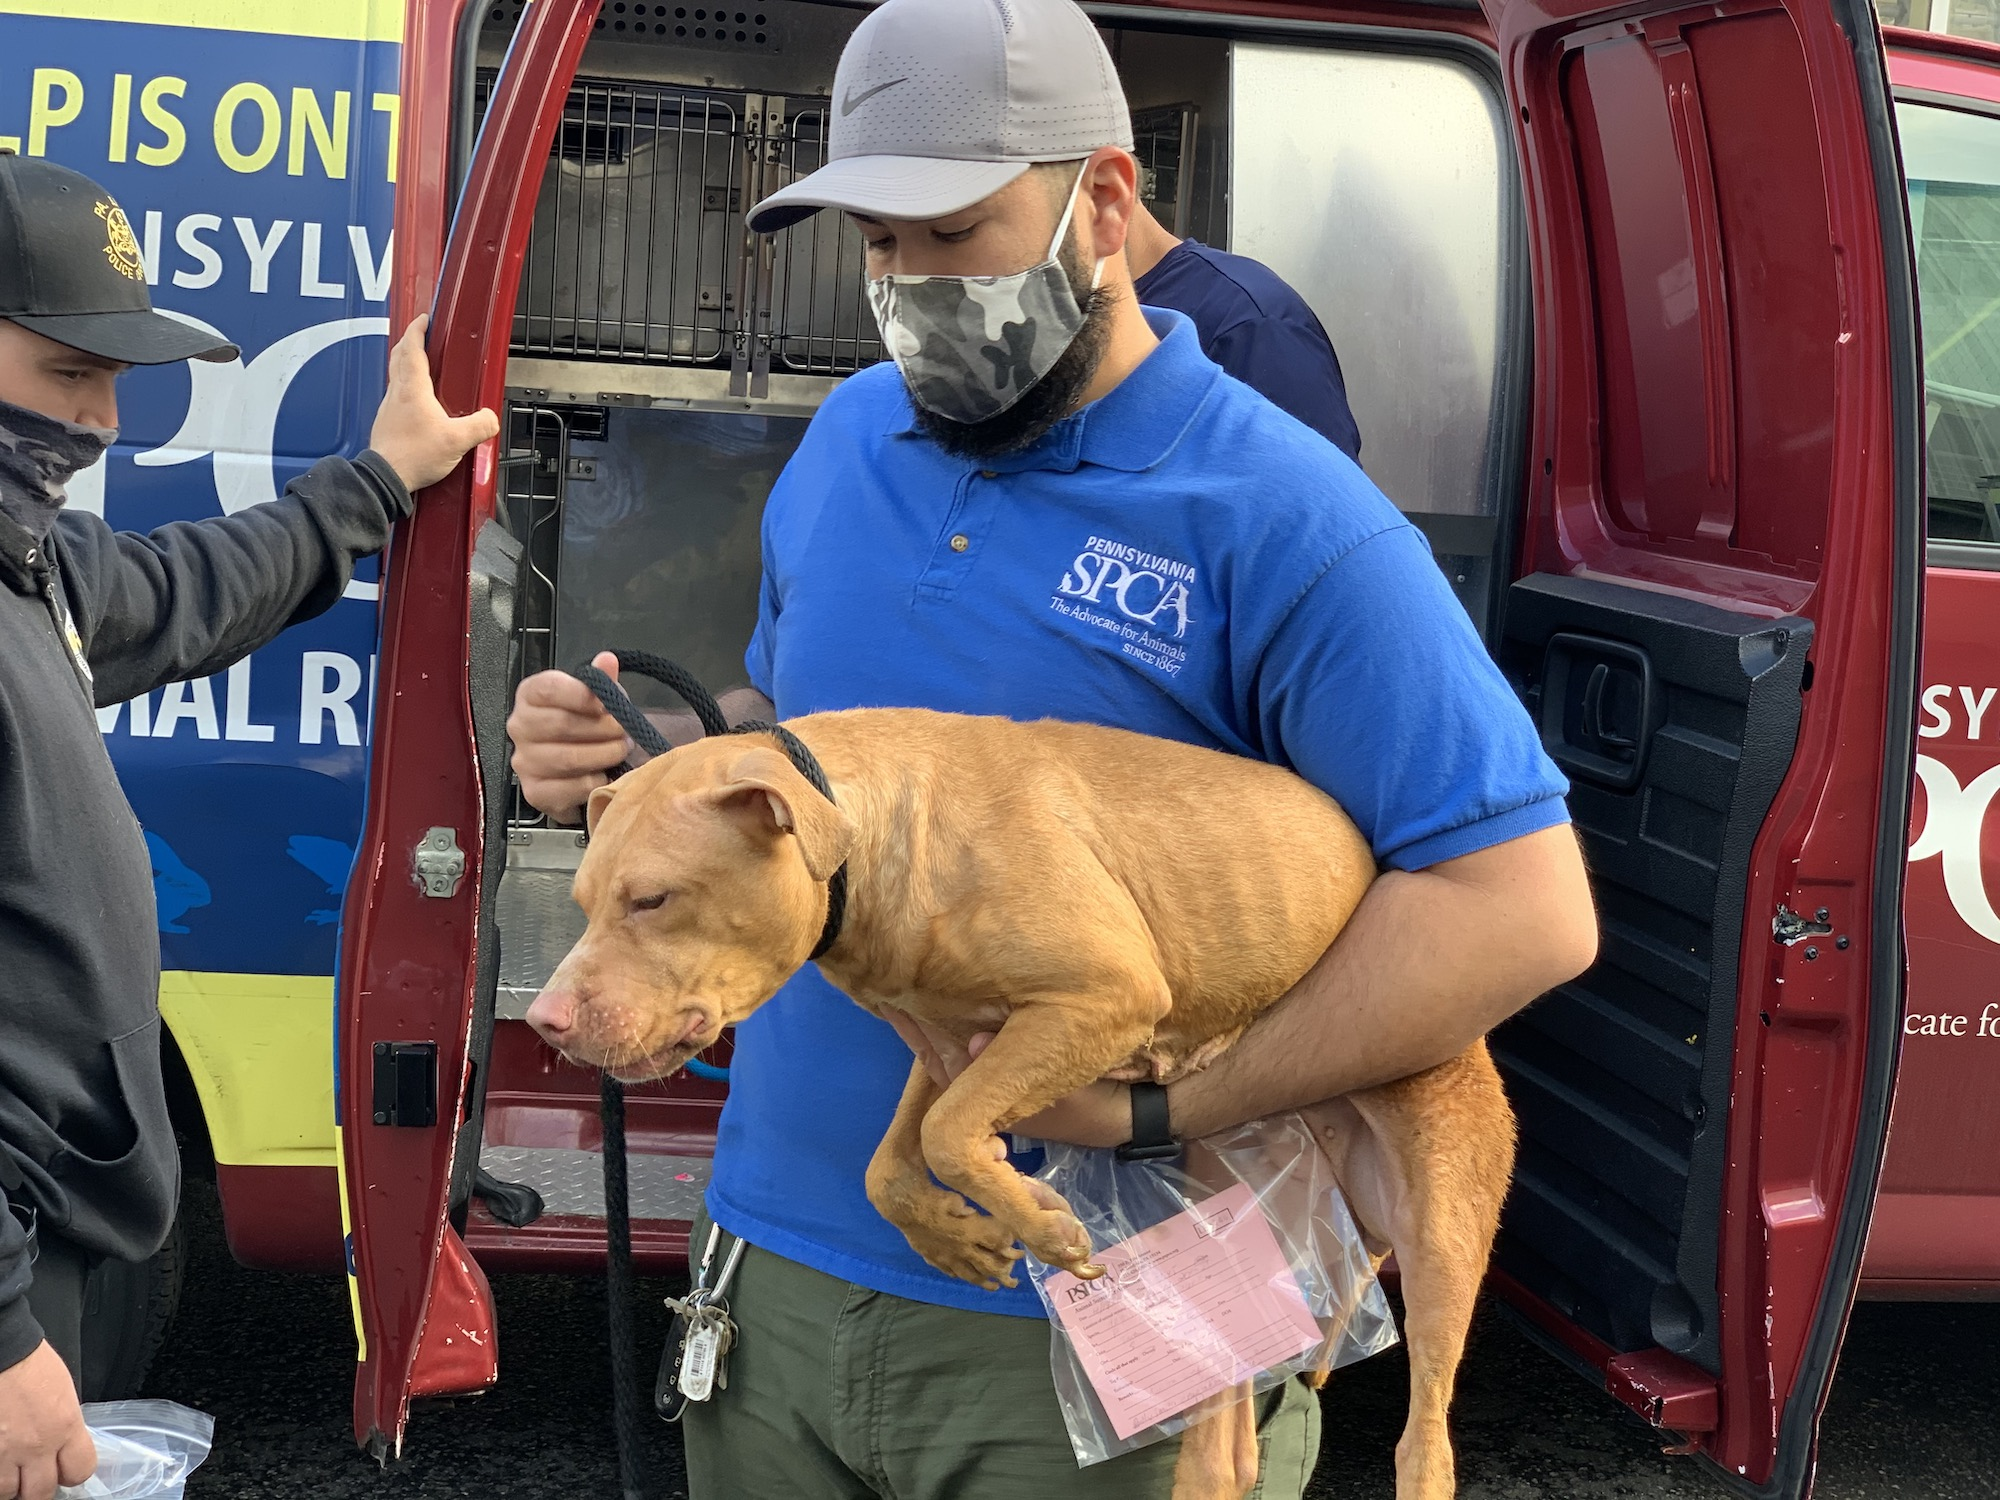 A PSPCA worker transports Sorbet the dog